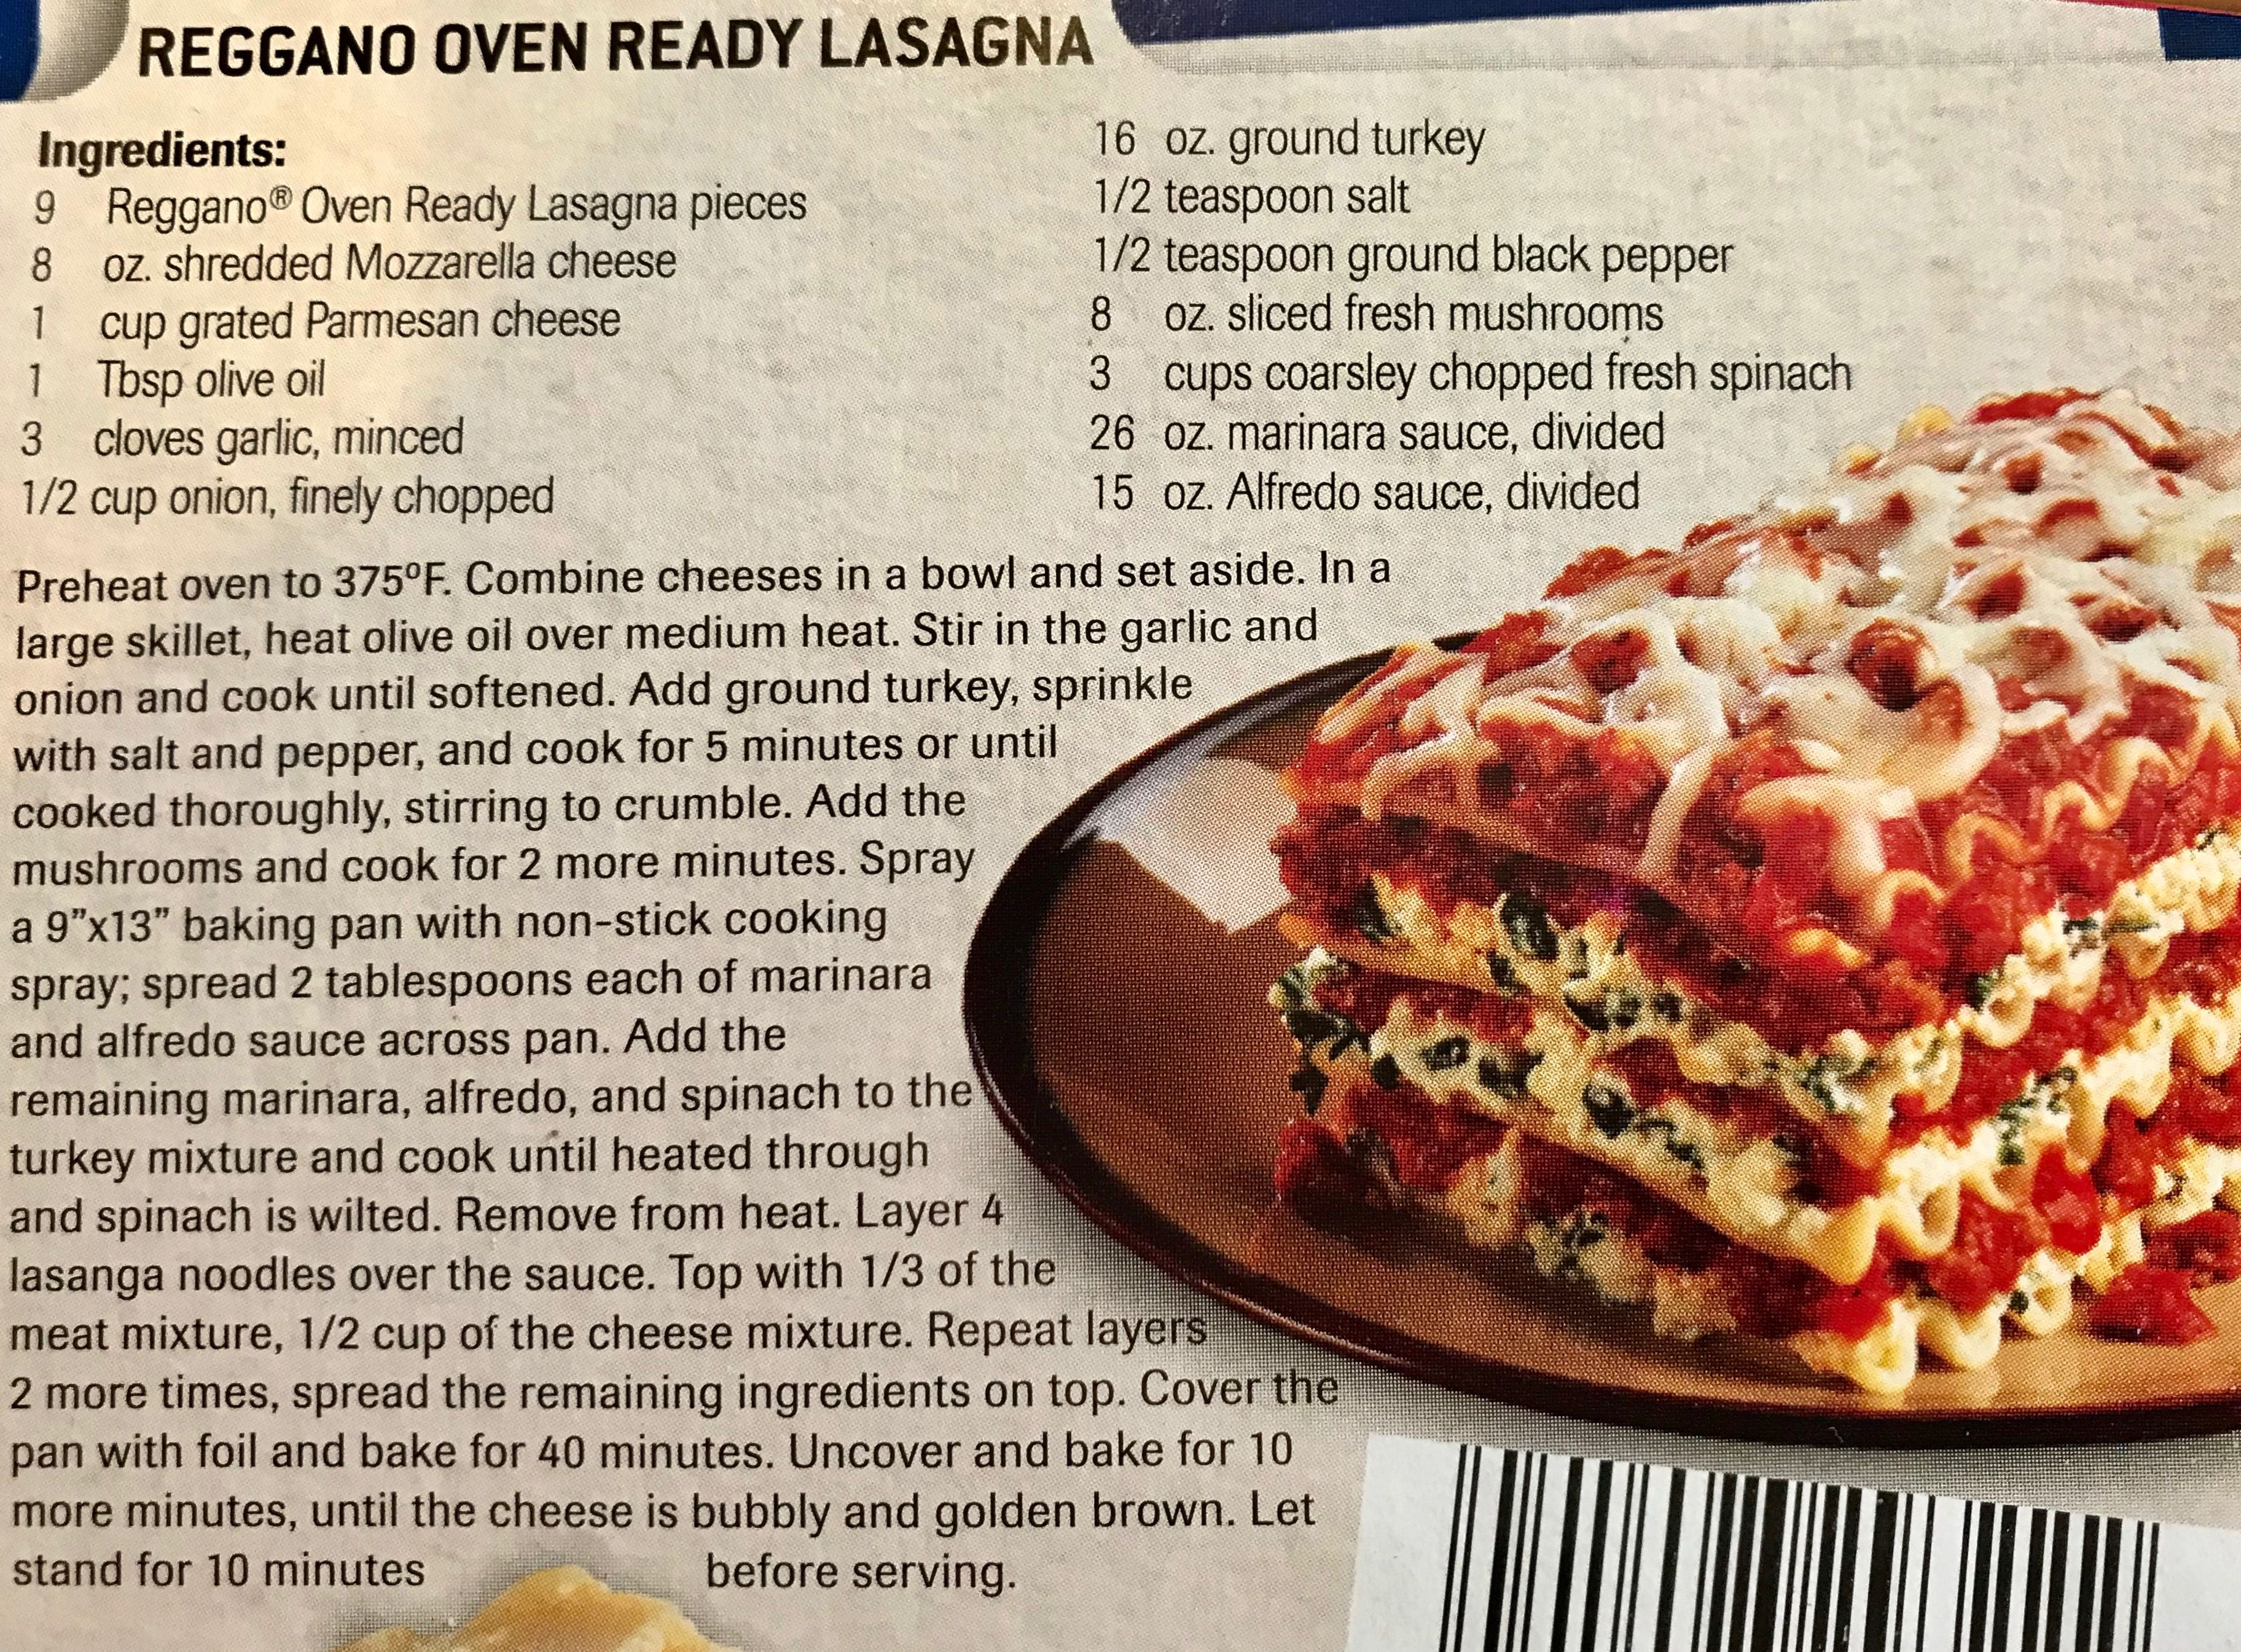 Aldi Reggano Oven Ready Lasagne Recipe Add 1 2 C Water For Every 5 Pcs Of Lasagne Can Use Less Mushro Oven Ready Lasagna Lasagne Recipes Lasagna Ingredients